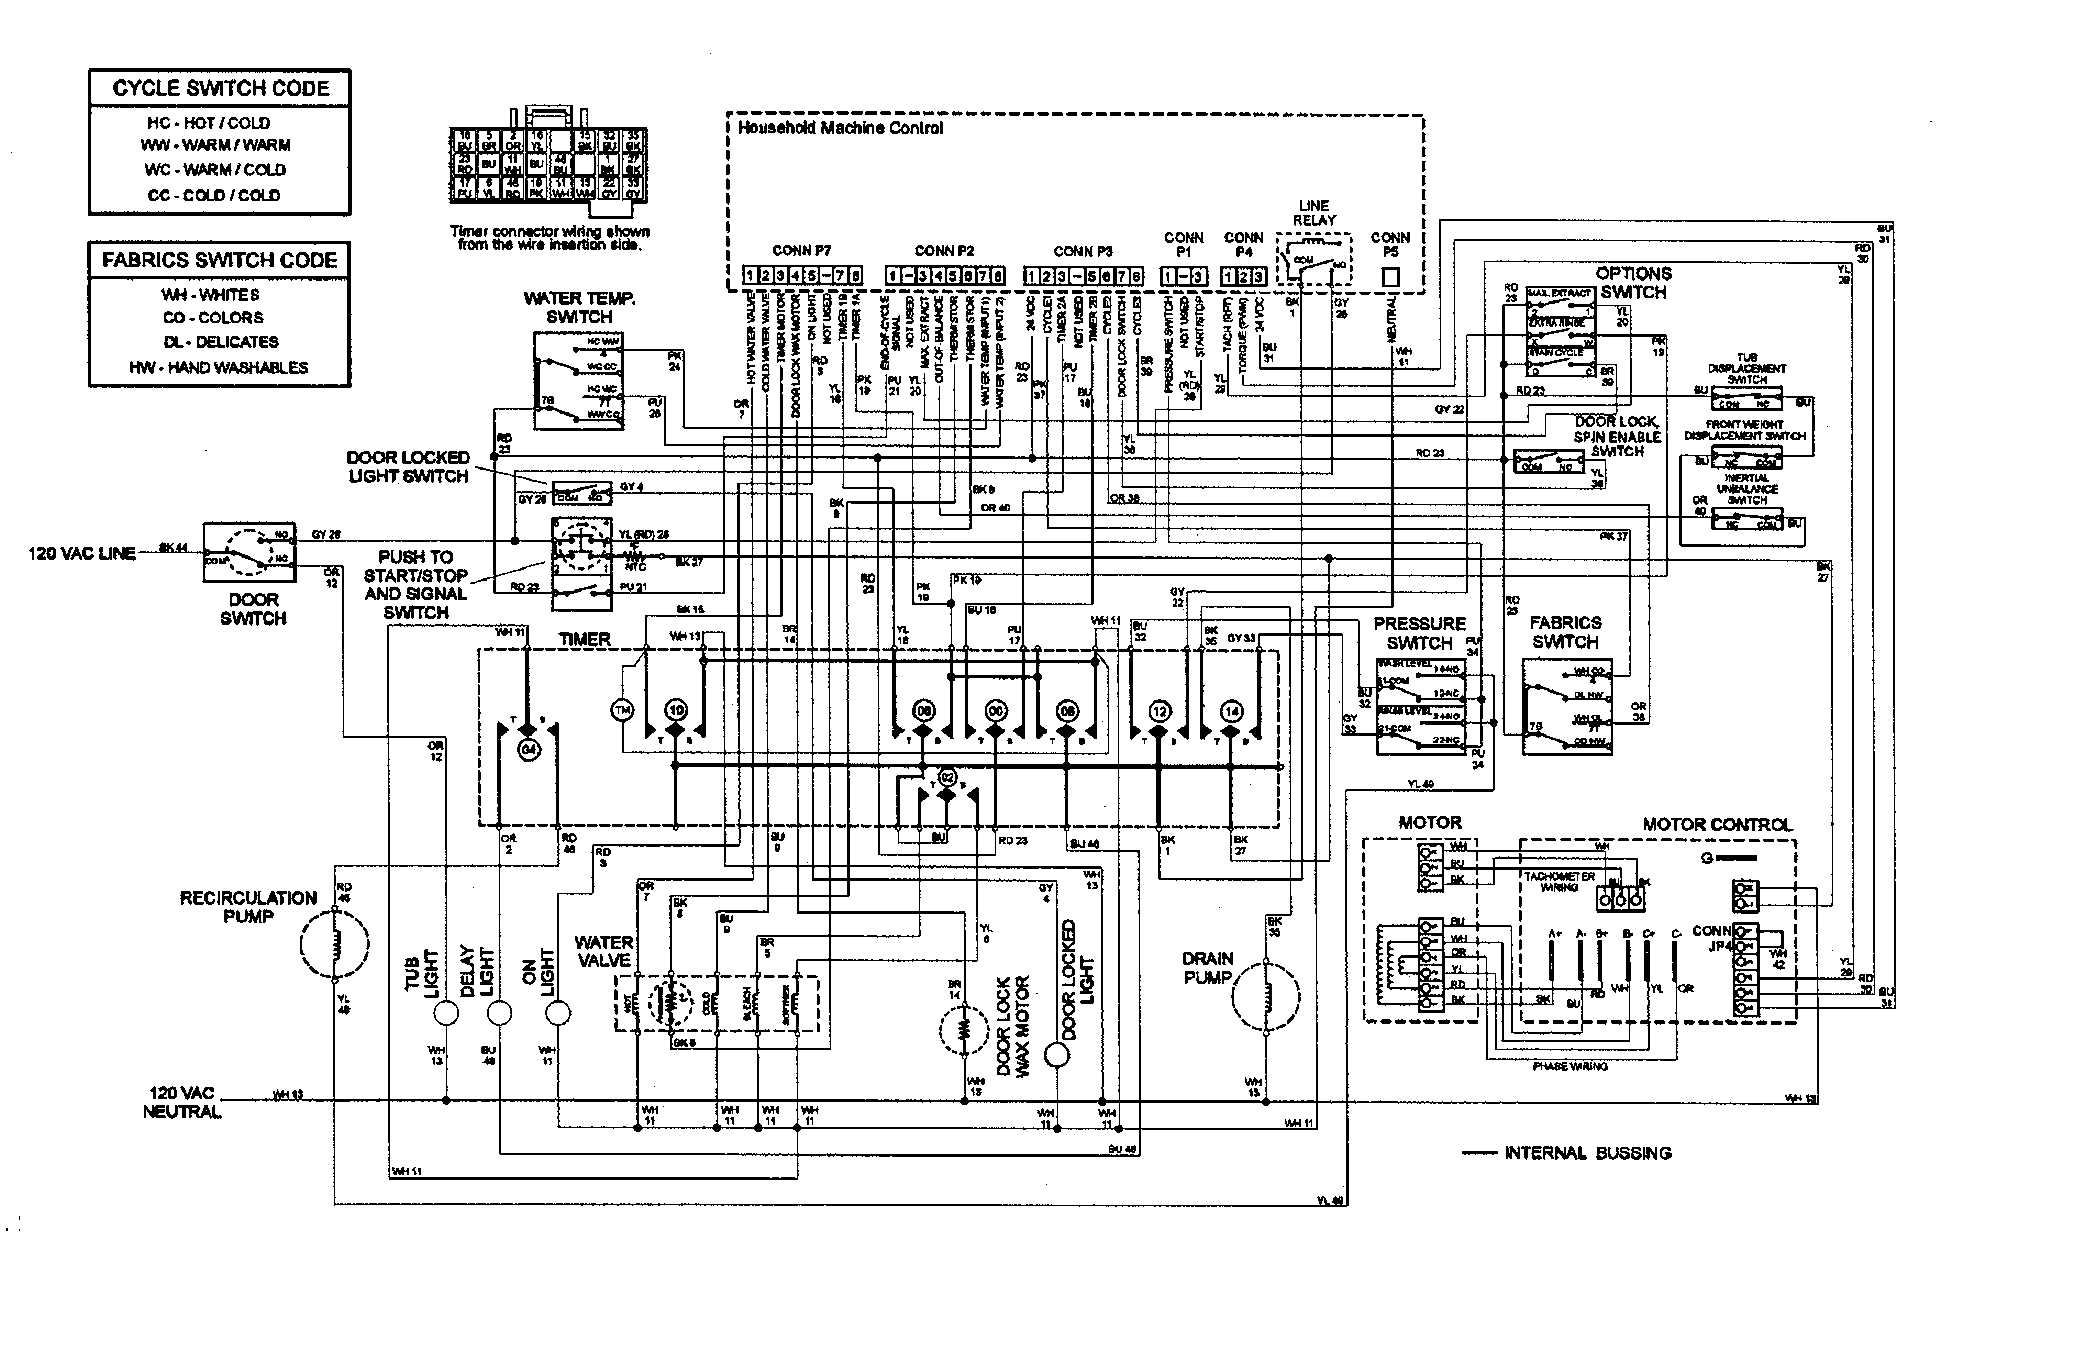 120v single phase motor wiring diagrams maytag single phase motor wiring diagrams maytag single phase motor wiring diagrams | better wiring ...